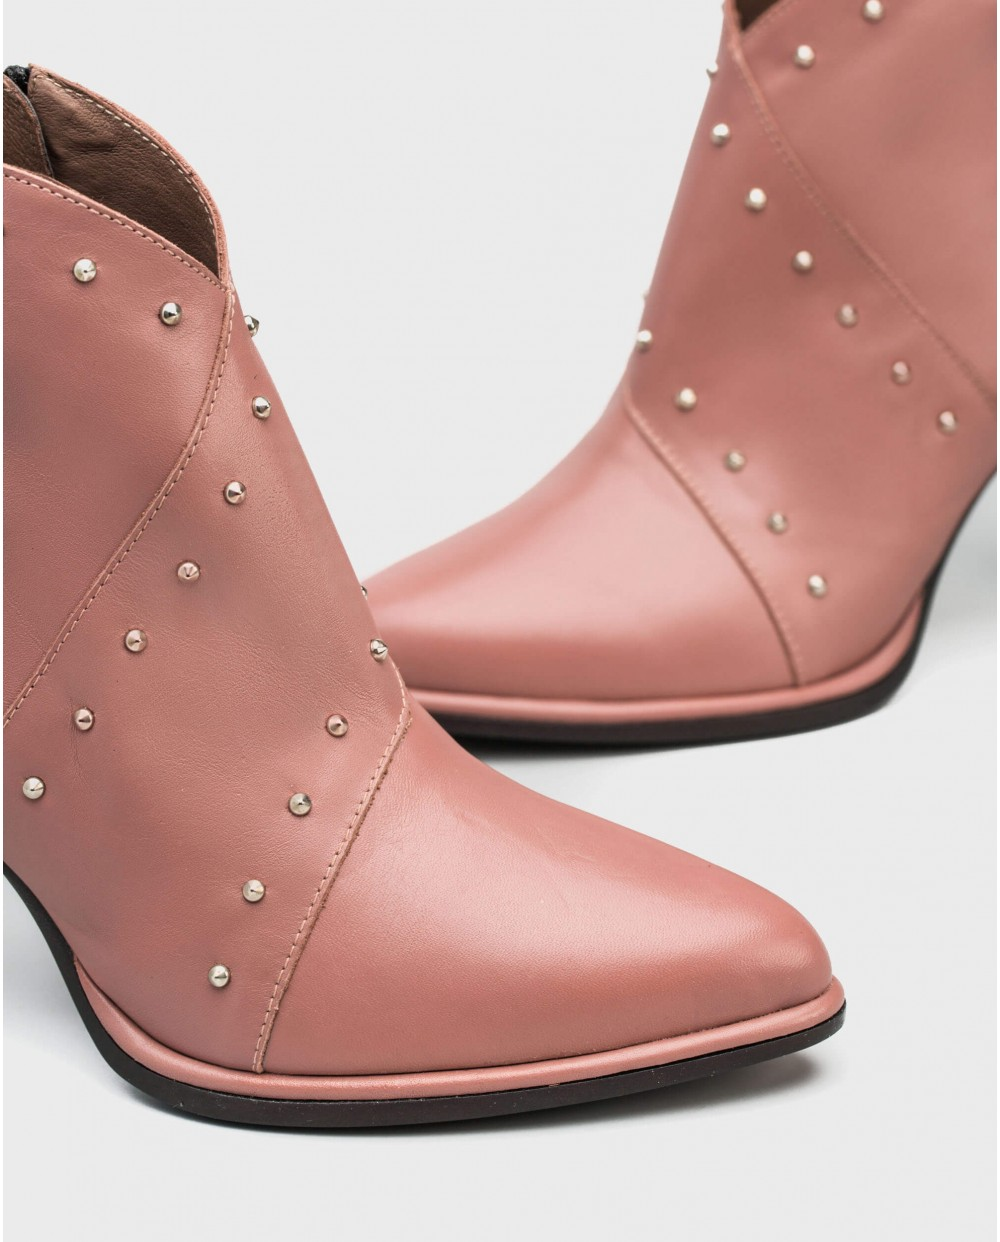 Wonders-Ankle Boots-Leather ankle boot withdouble rhinestone strap